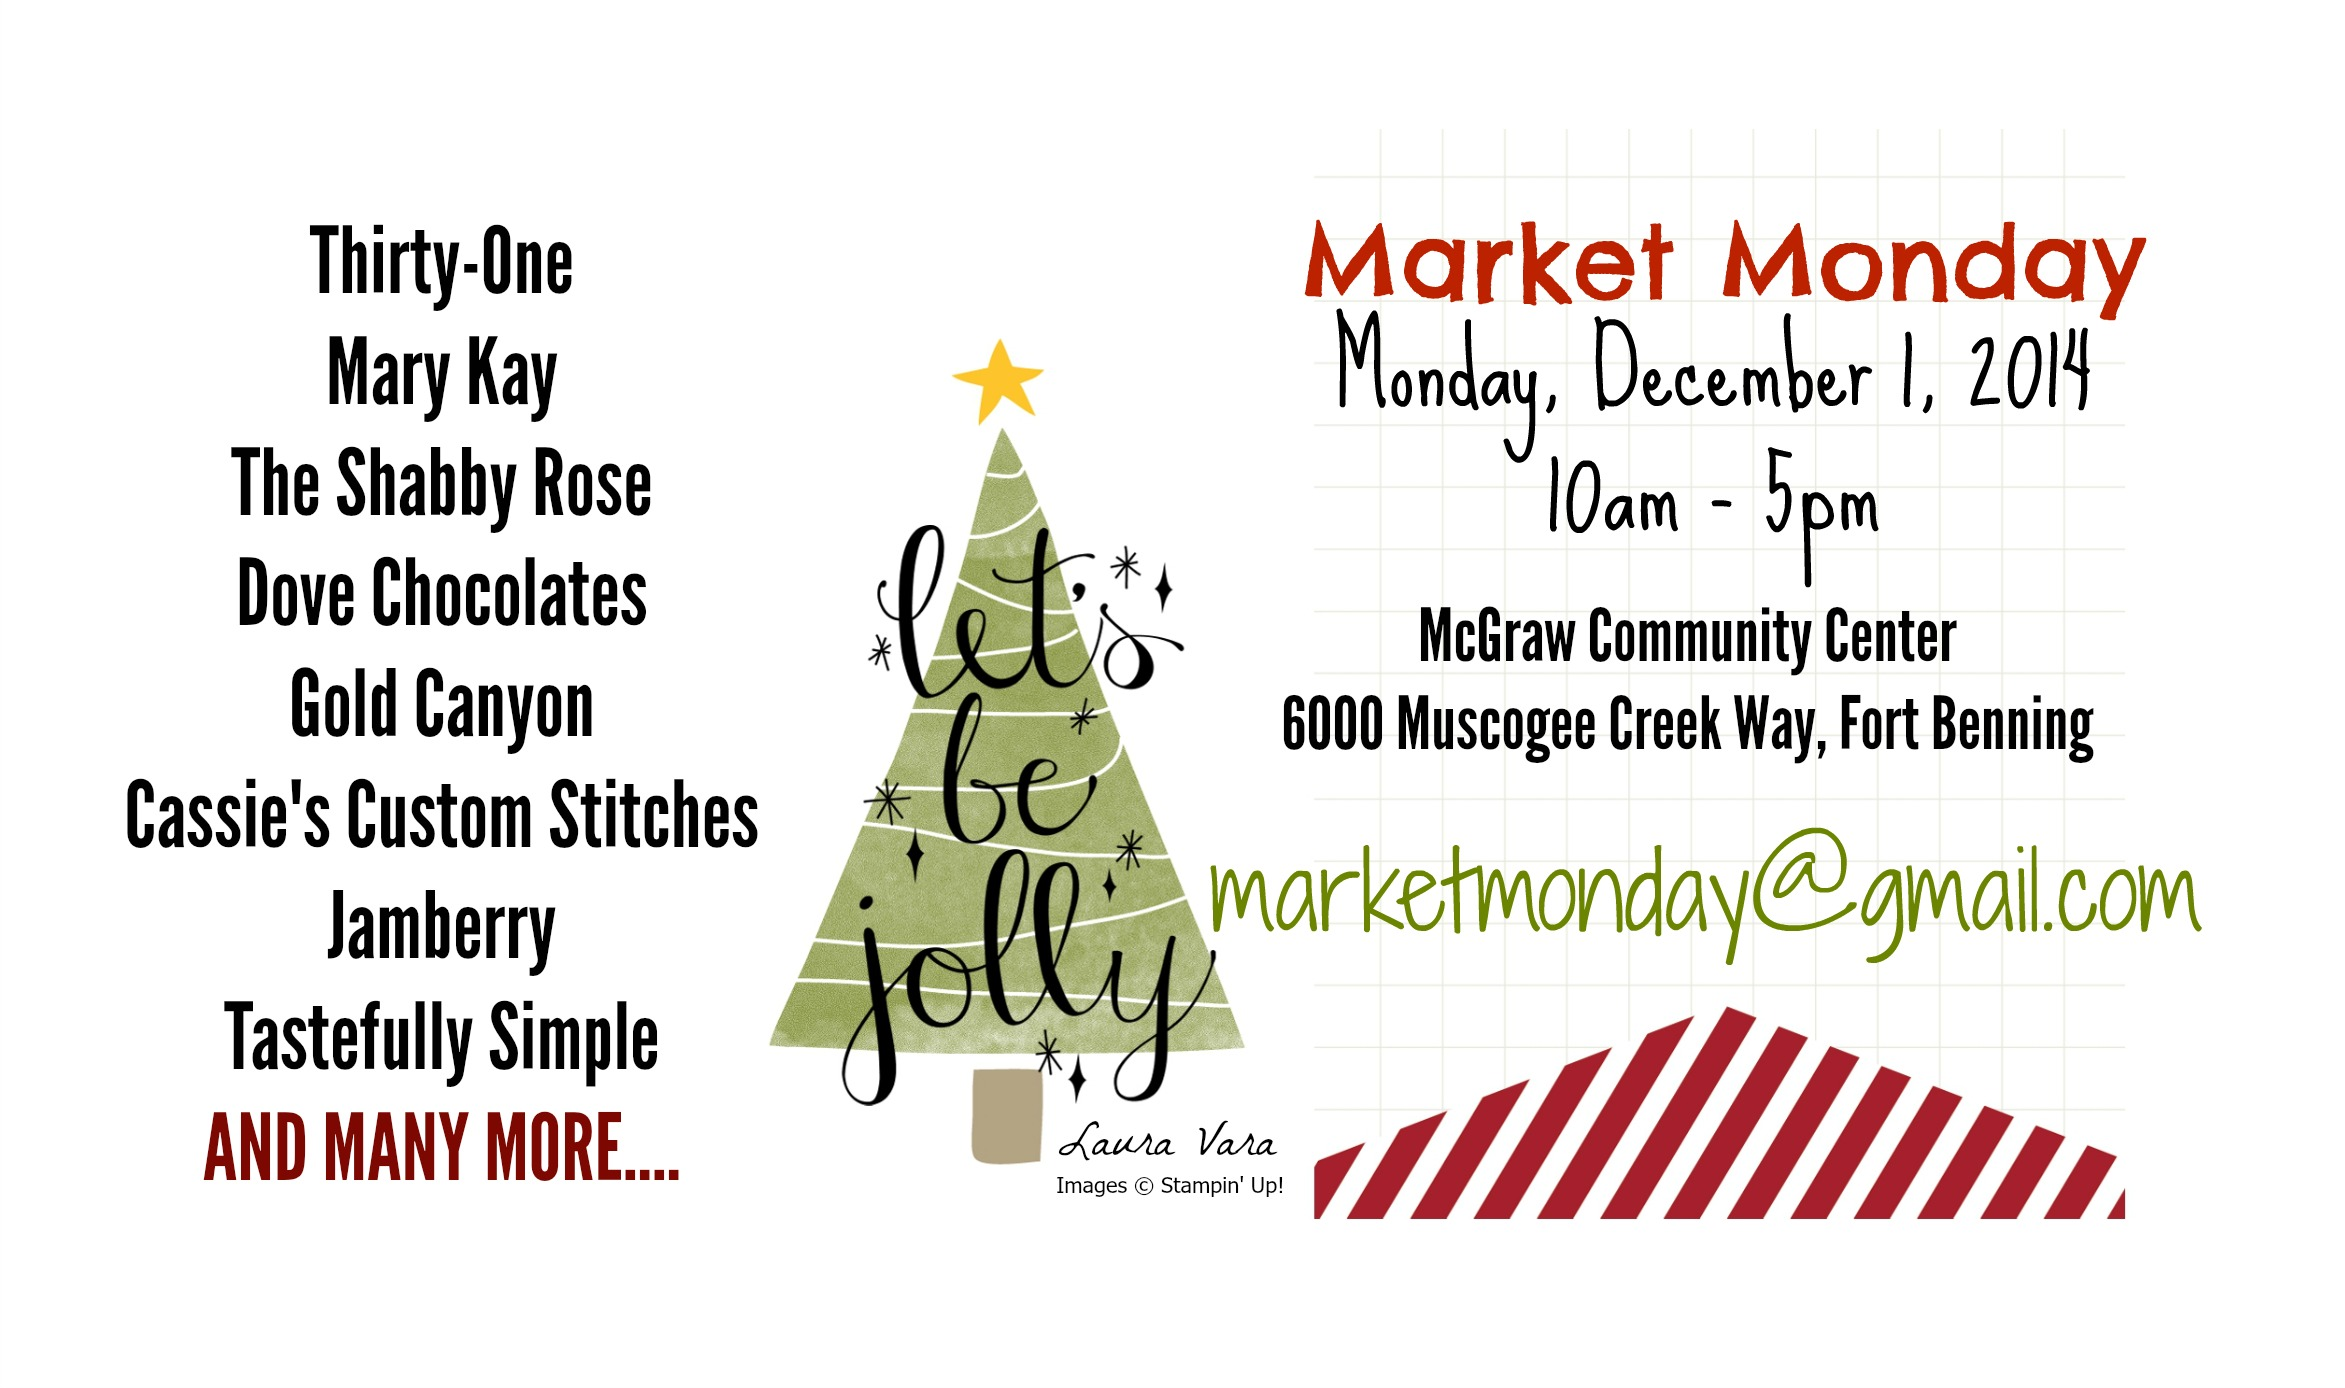 Market Monday on Ft. Benning